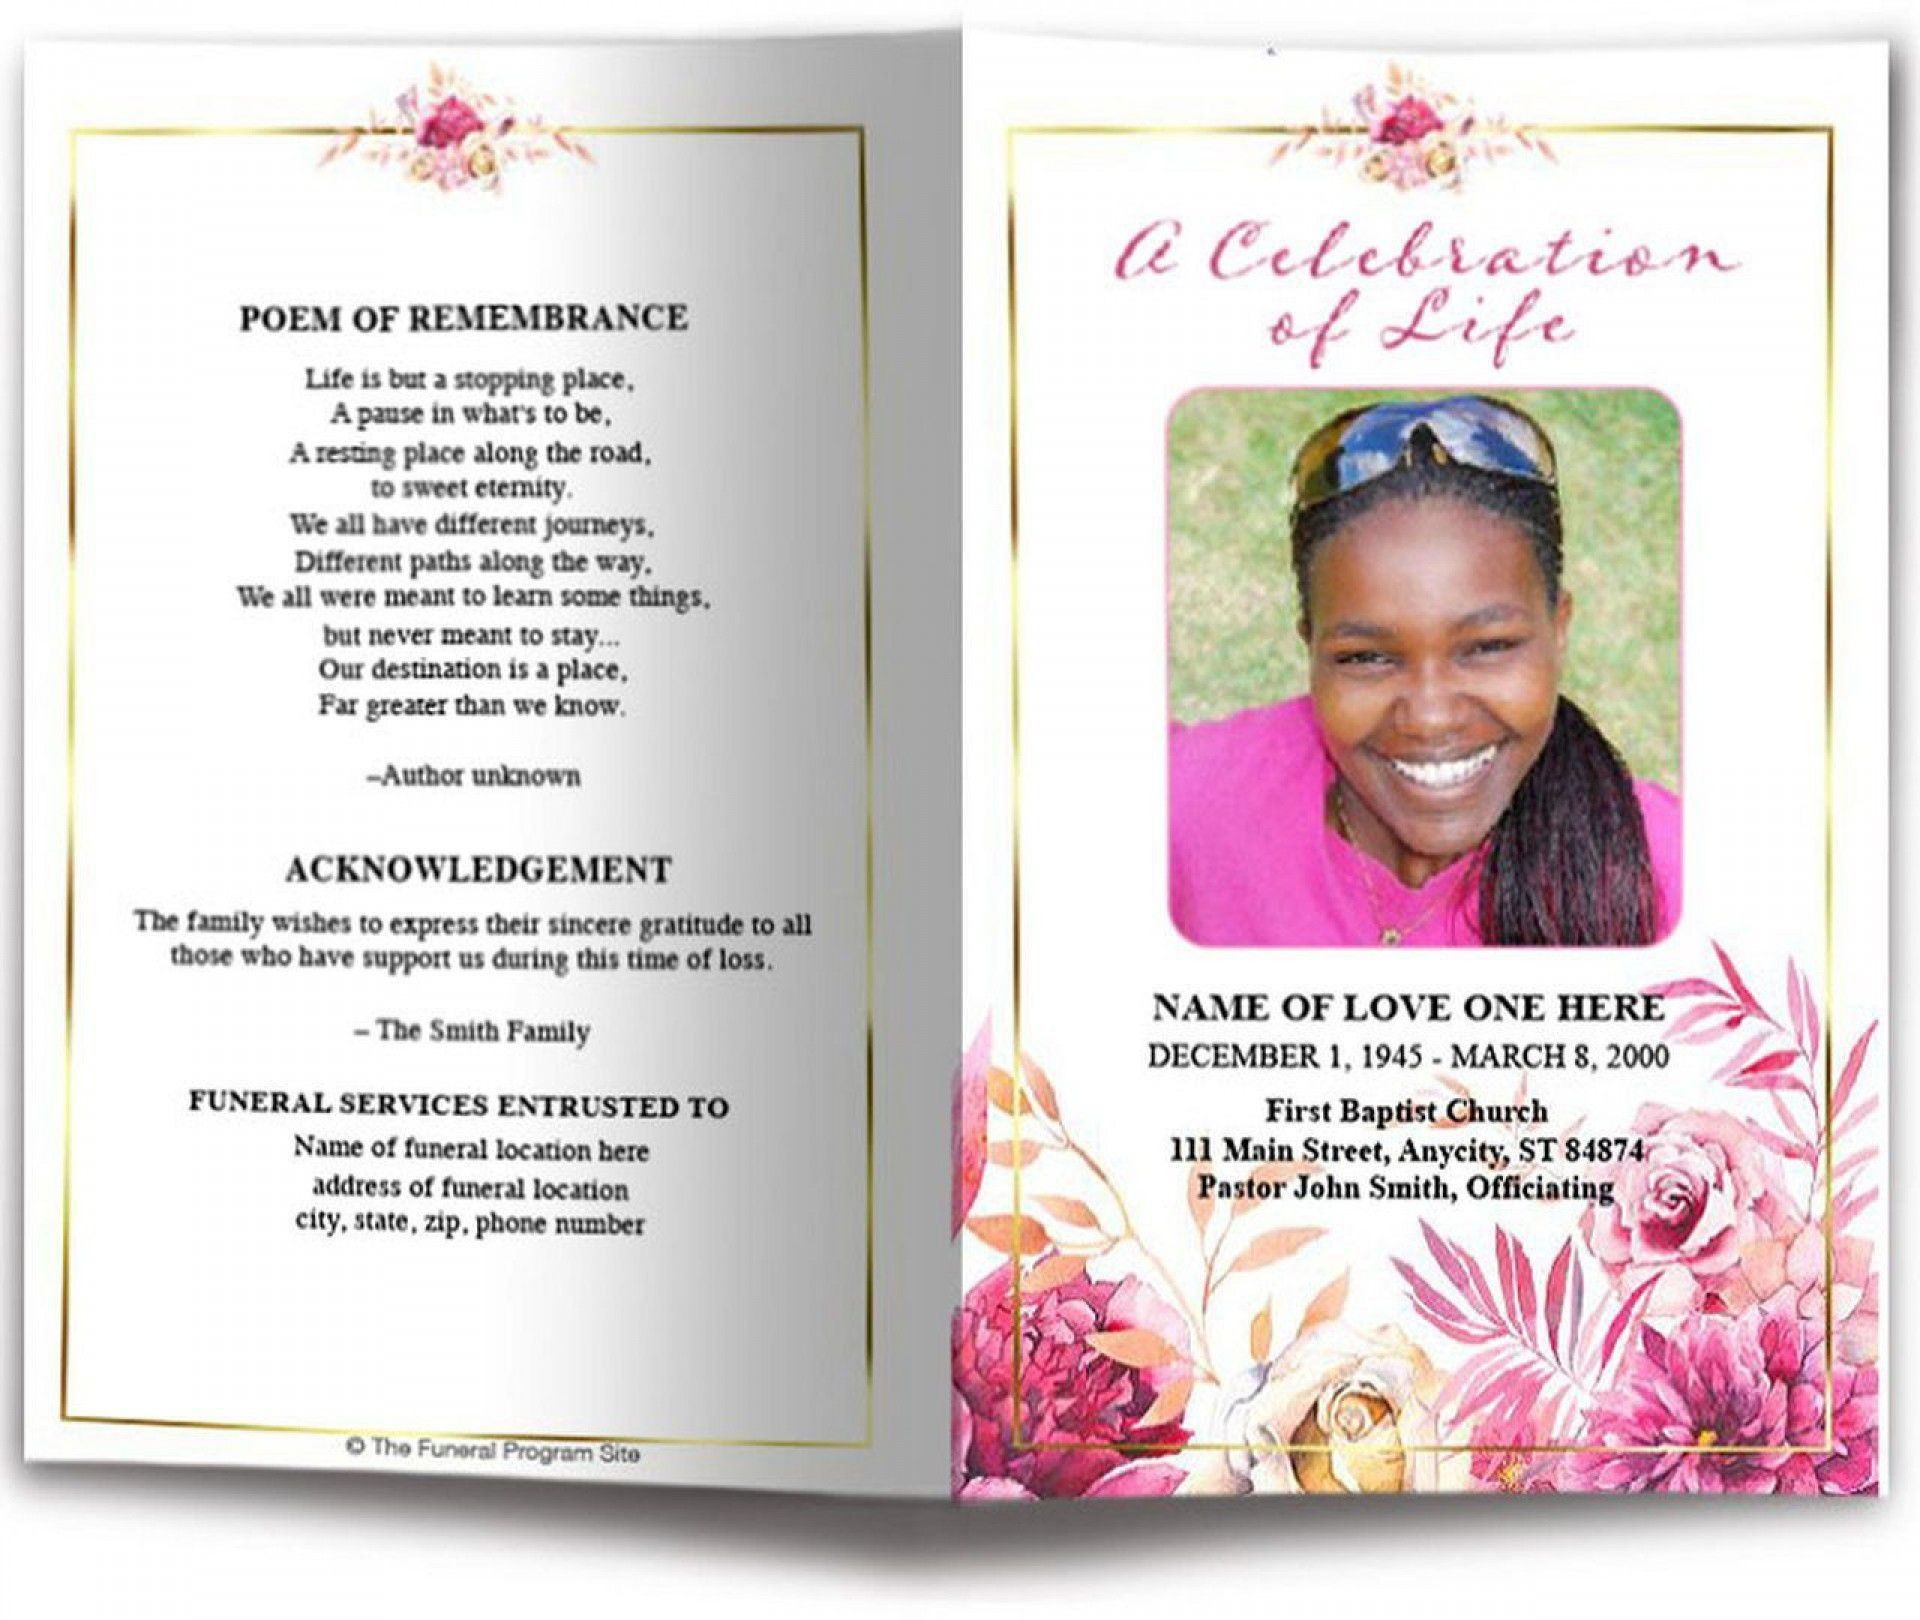 009 Archaicawful Template For Funeral Program On Word High Def  2010 Free Sample Wording1920